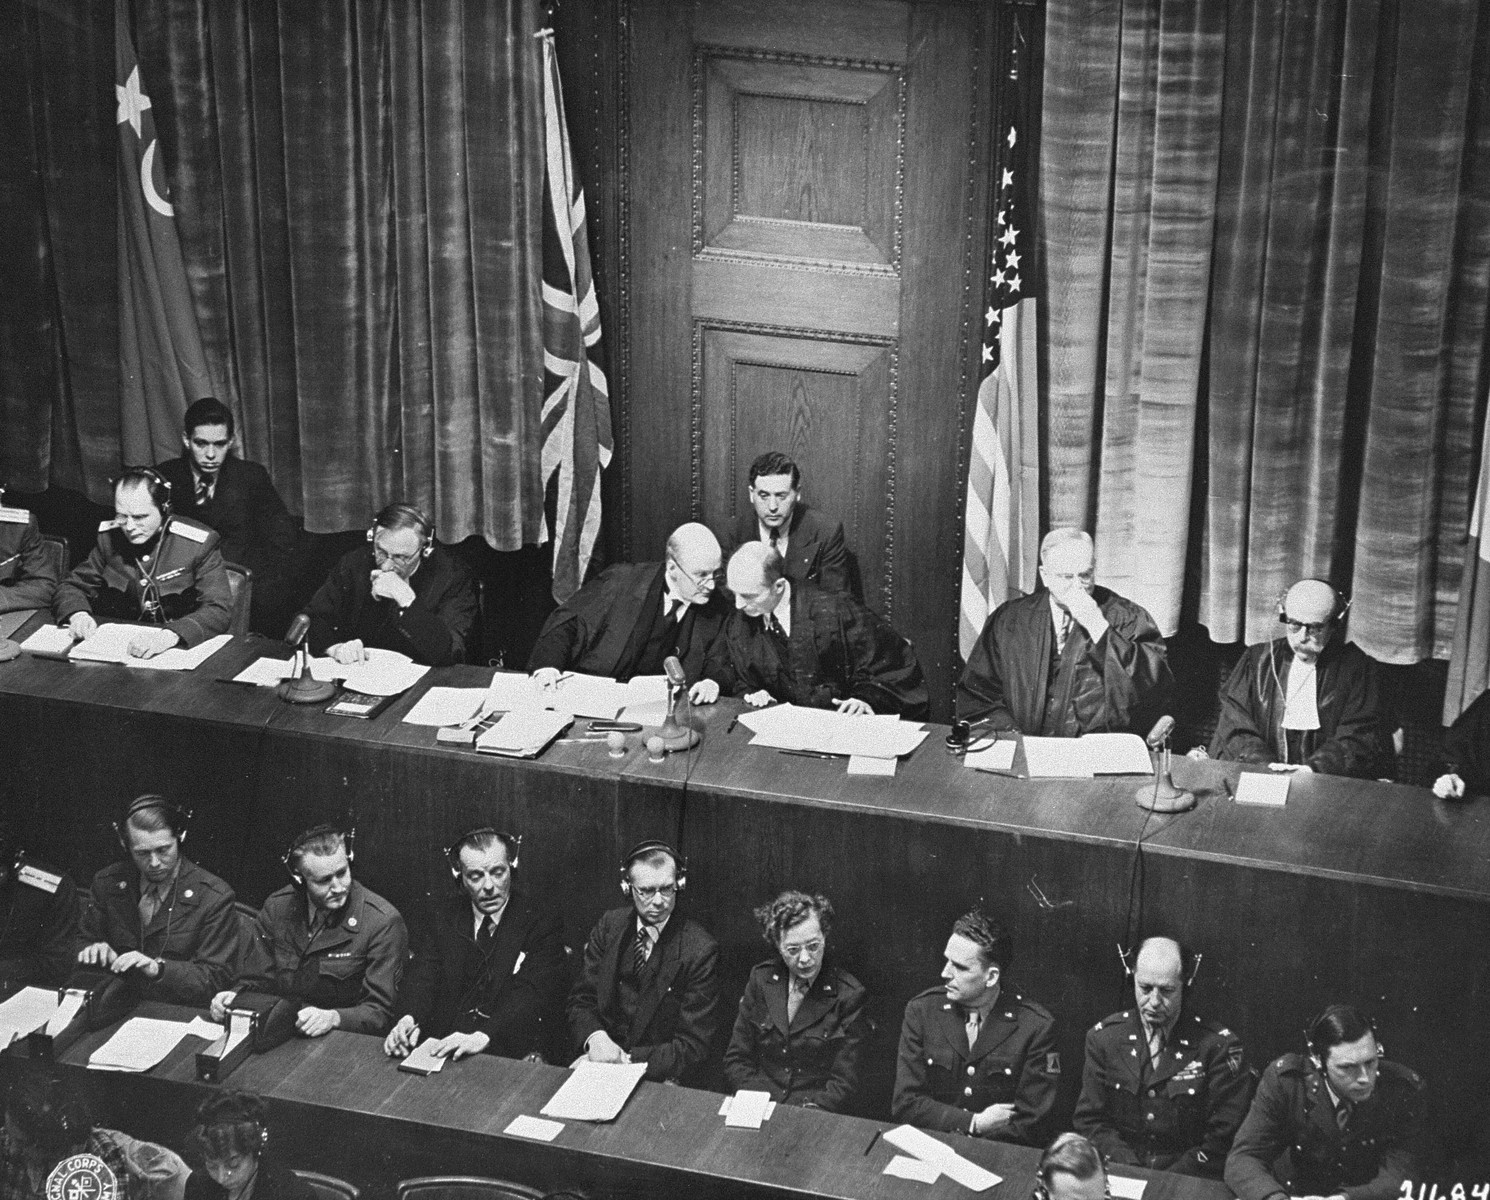 Tribunal members Lord Justice Geoffrey Lawrence (Britain, left) and Francis Biddle (U.S., right) confer at the opening session of the International Military Tribunal trial of war criminals at Nuremberg.